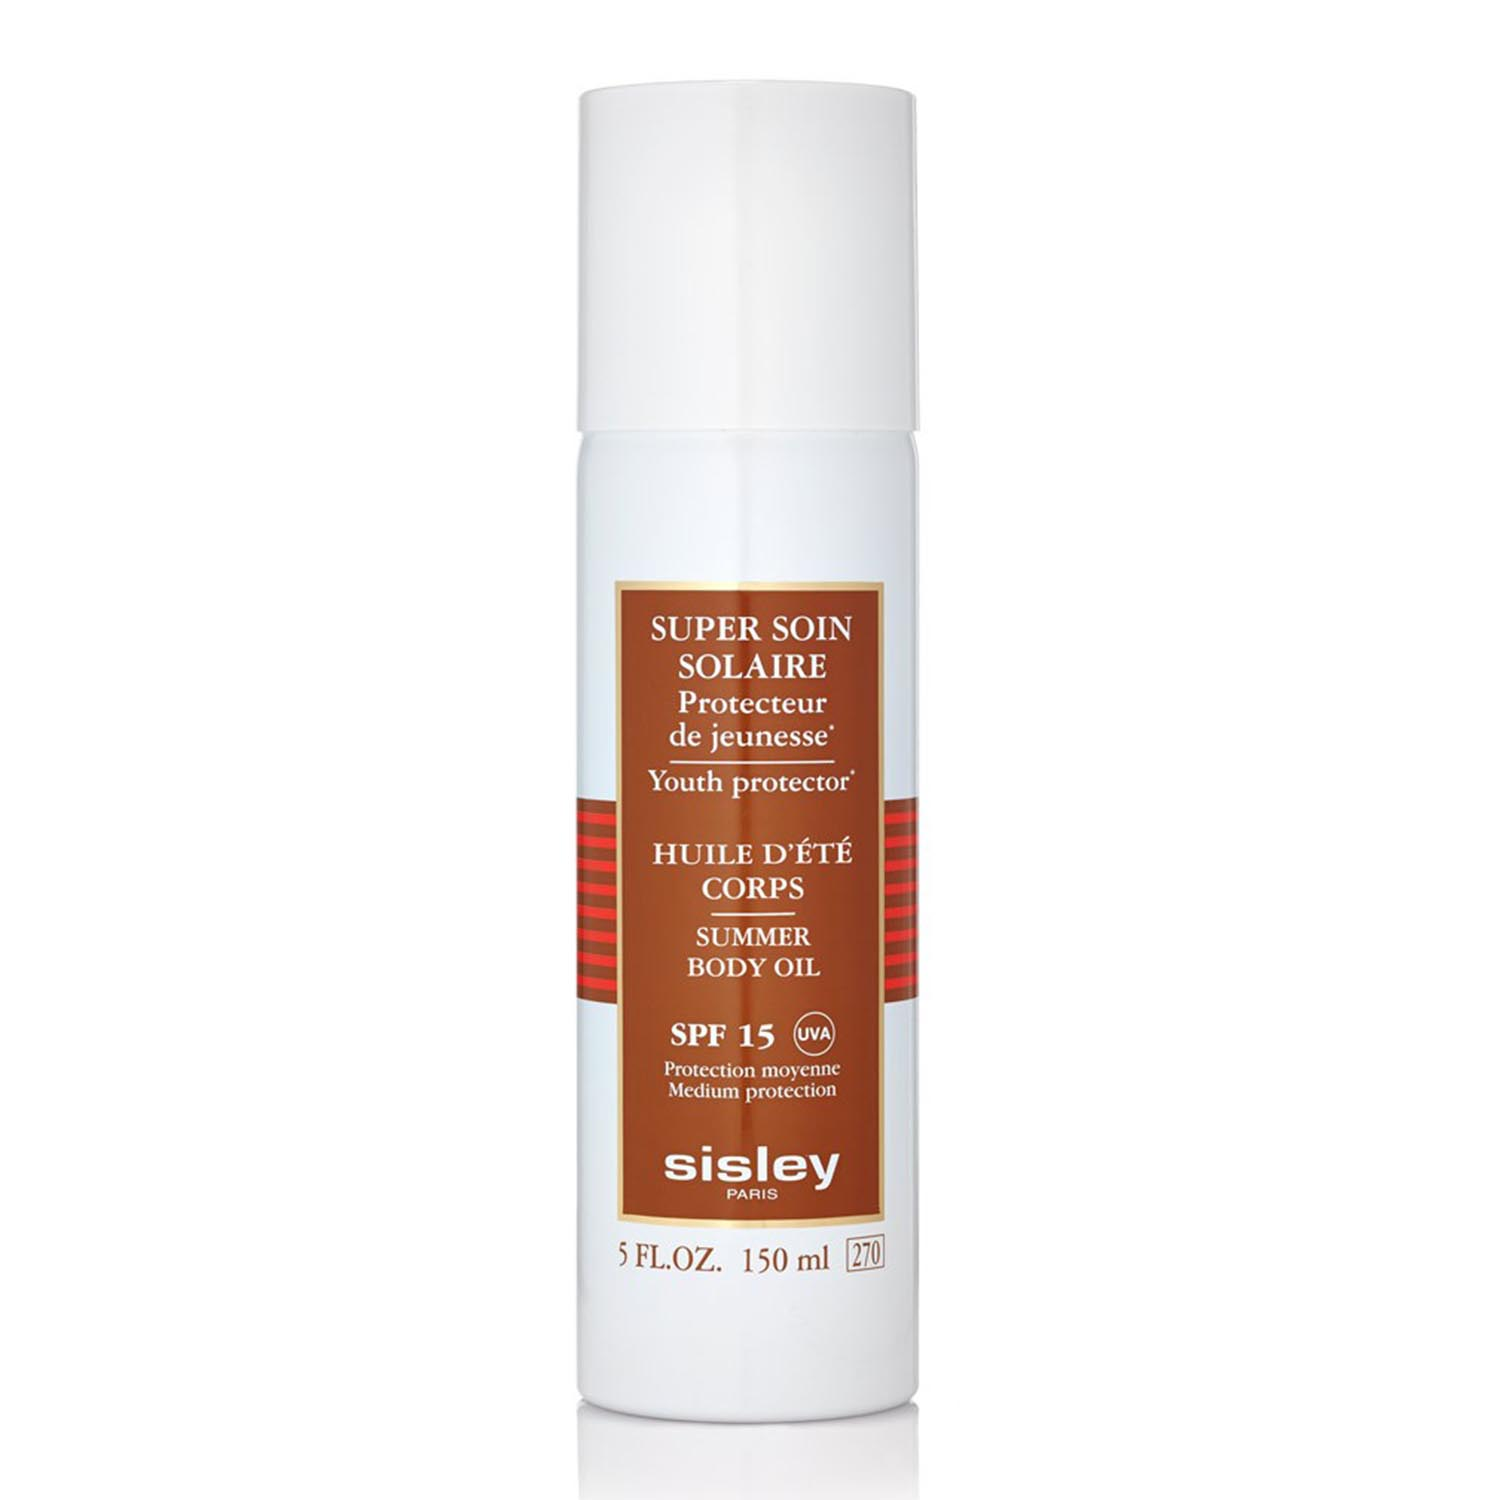 Sisley super soin solaire youth protector spf15 aceite corporal 150ml